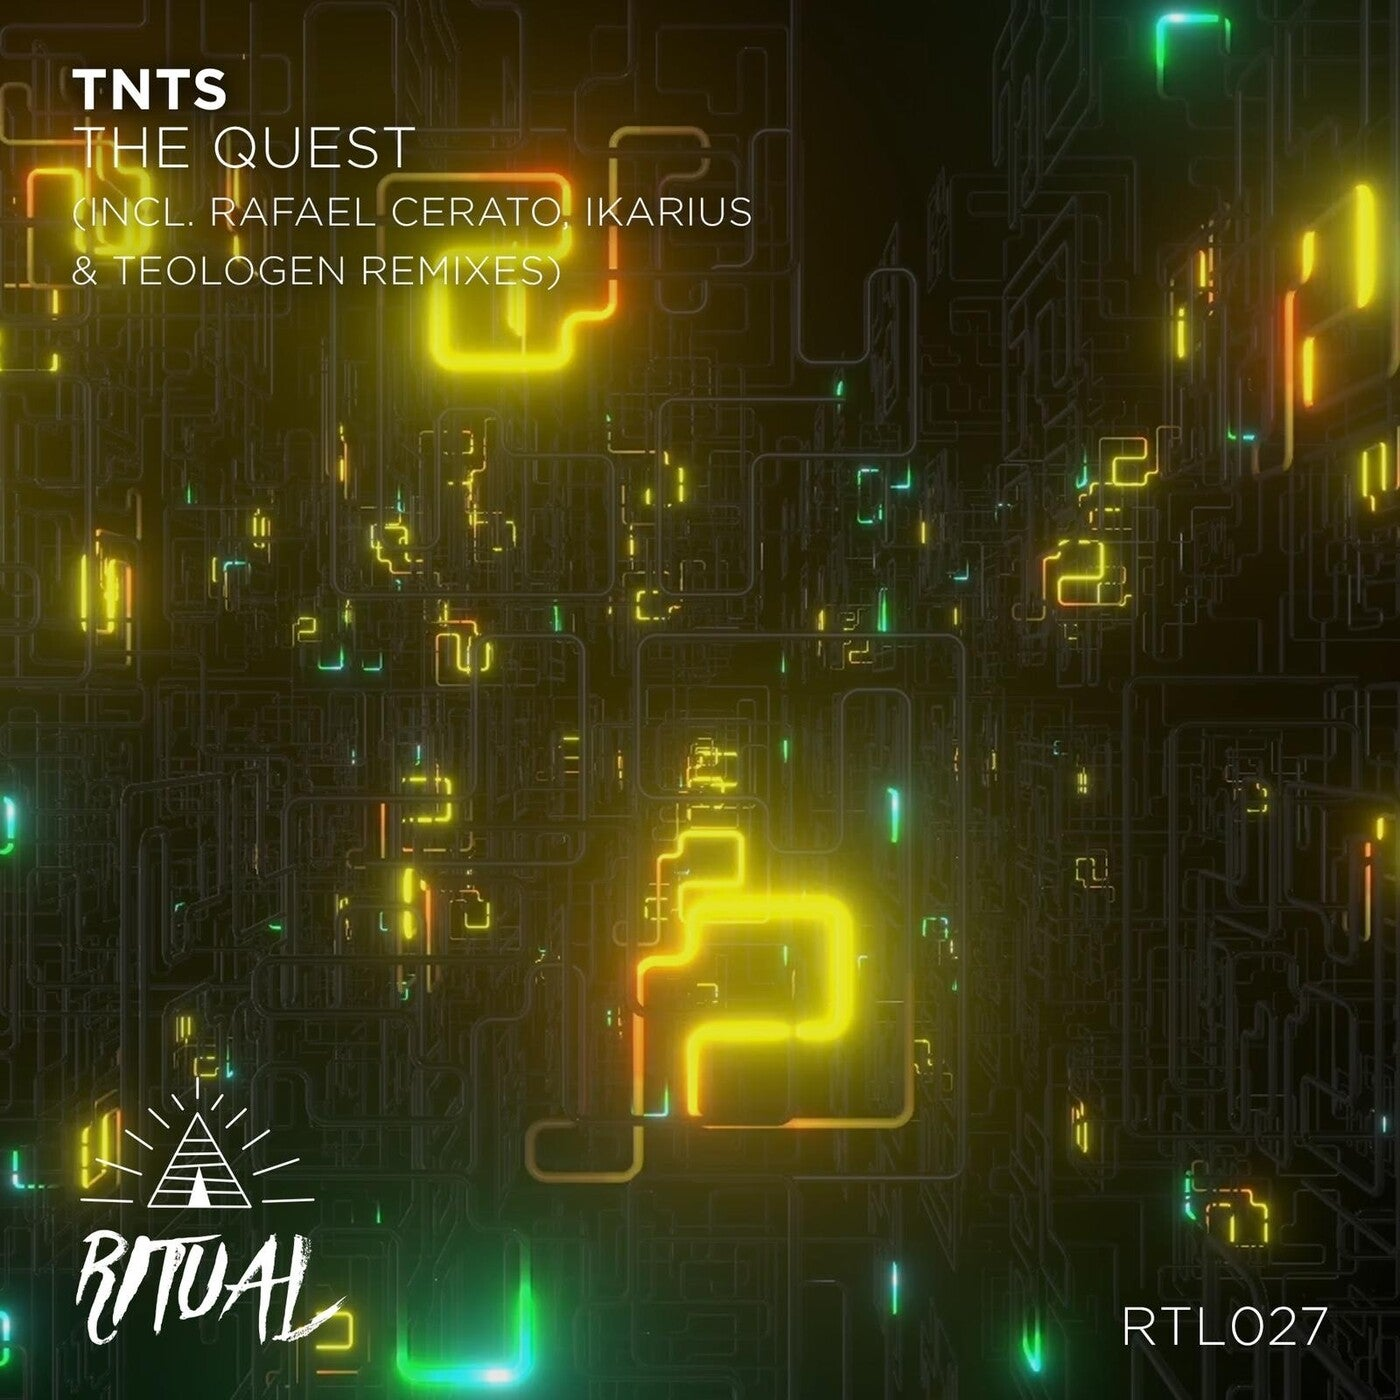 Download The Quest on Electrobuzz